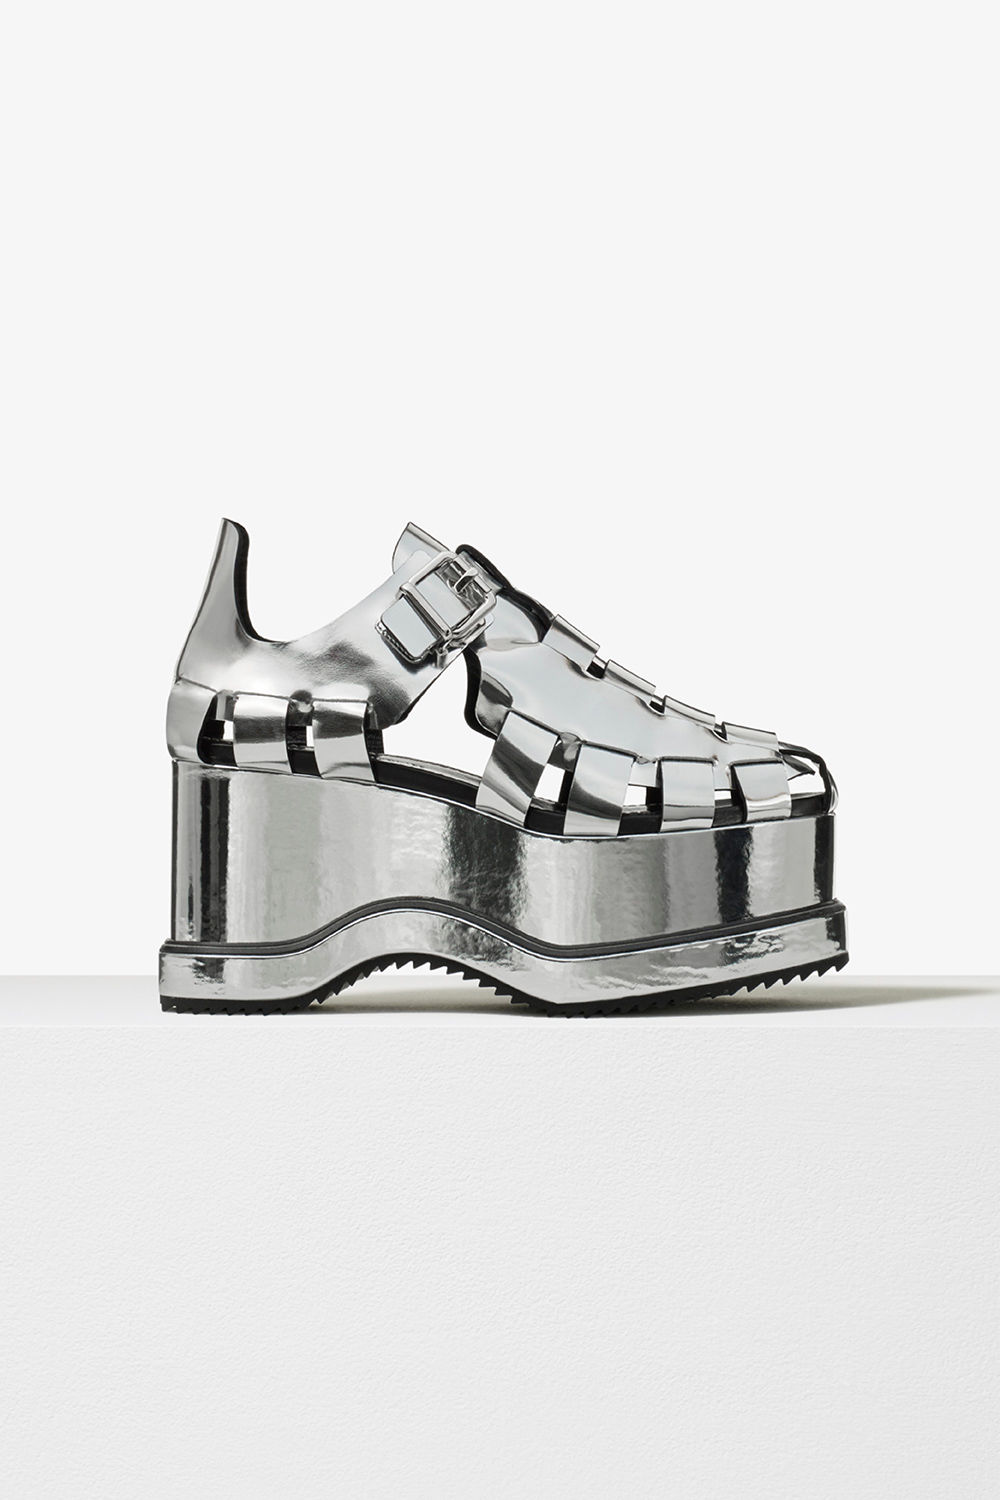 proenza schouler pre fall 2017 silver metallic calf leather woven close toe platform sandal